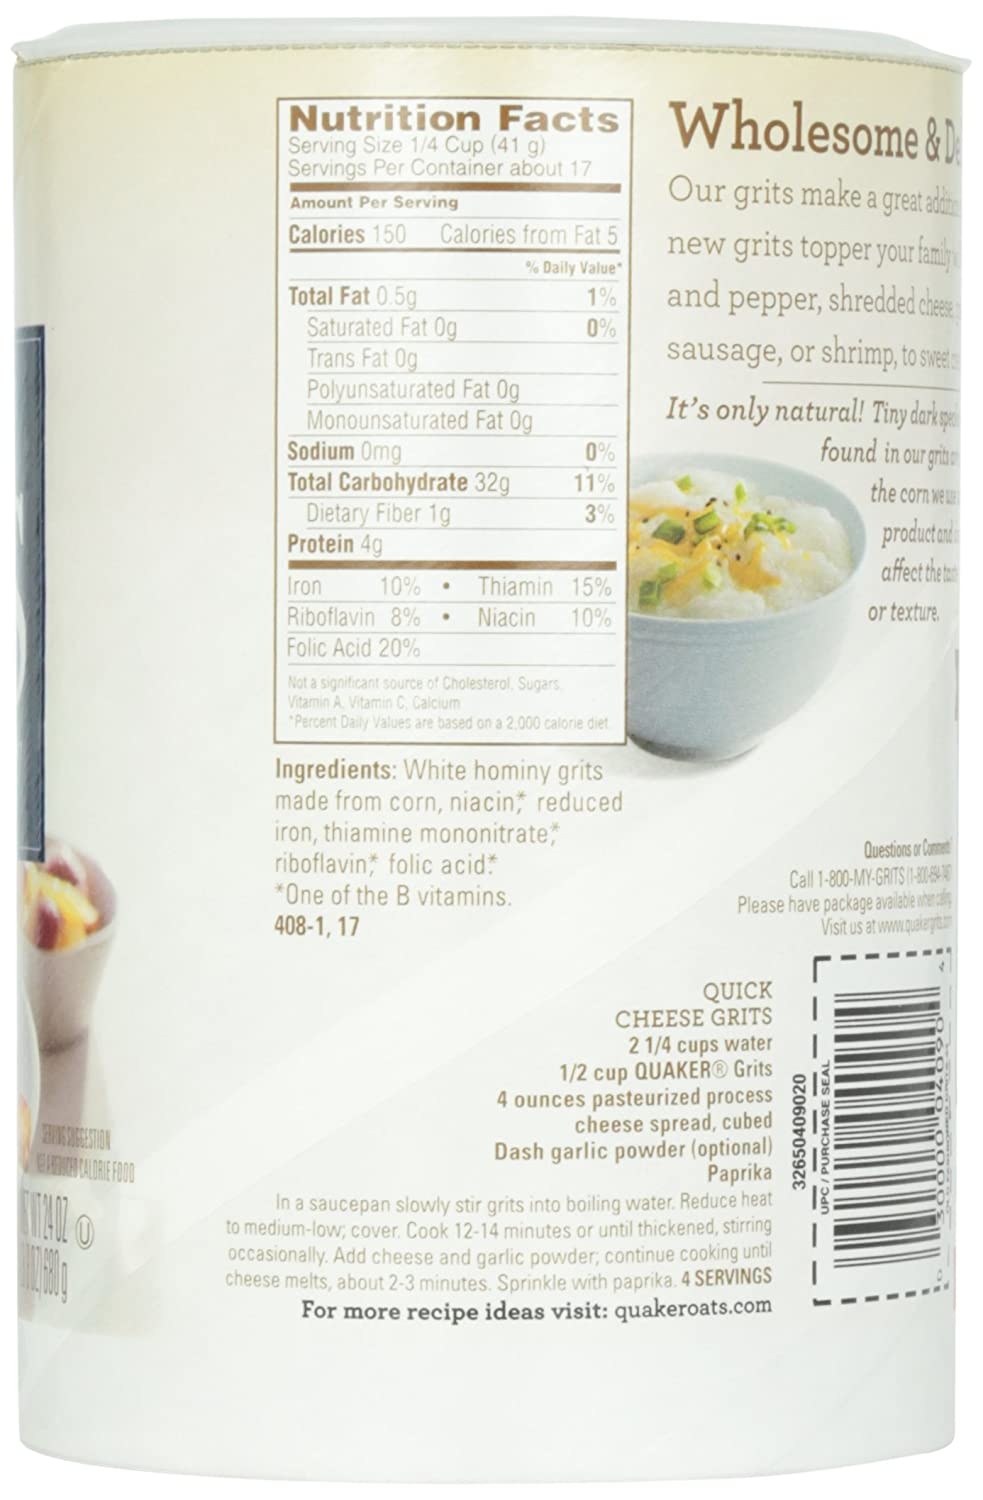 Amazon.com: Quaker Old Fashioned Smooth & Creamy Grits, 24 Ounce: Breakfast Grits